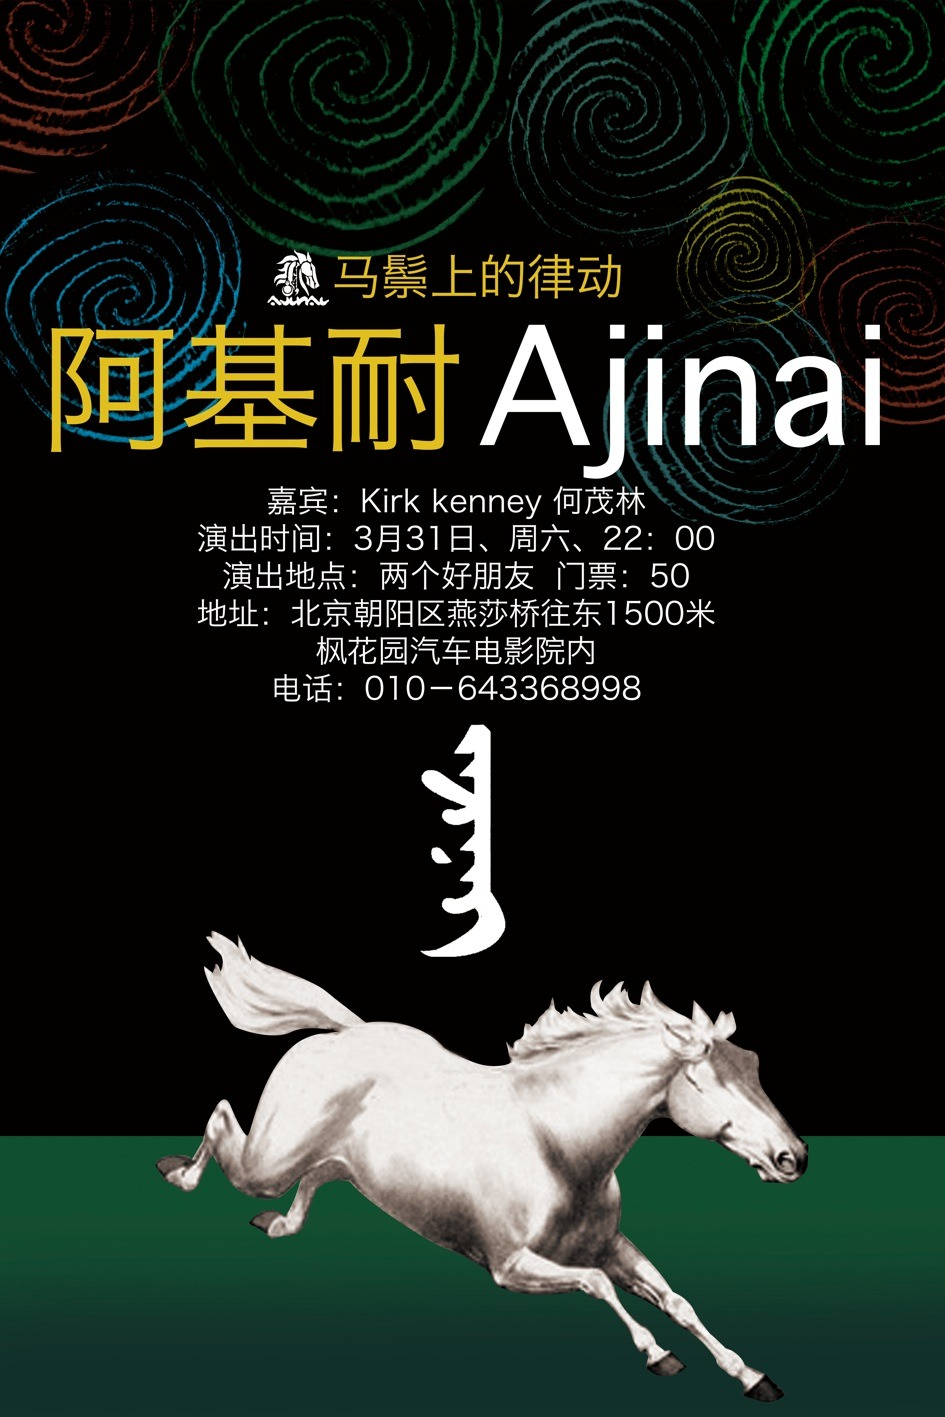 What: Ajinai (Beijing/Mongolian Folk) Where: 2 Kolegas 北京 朝阳区 亮马桥路21号枫花园汽车电影院内两个好朋友酒吧 When: Saturday 3.31 http://www.douban.com/event/15919987/